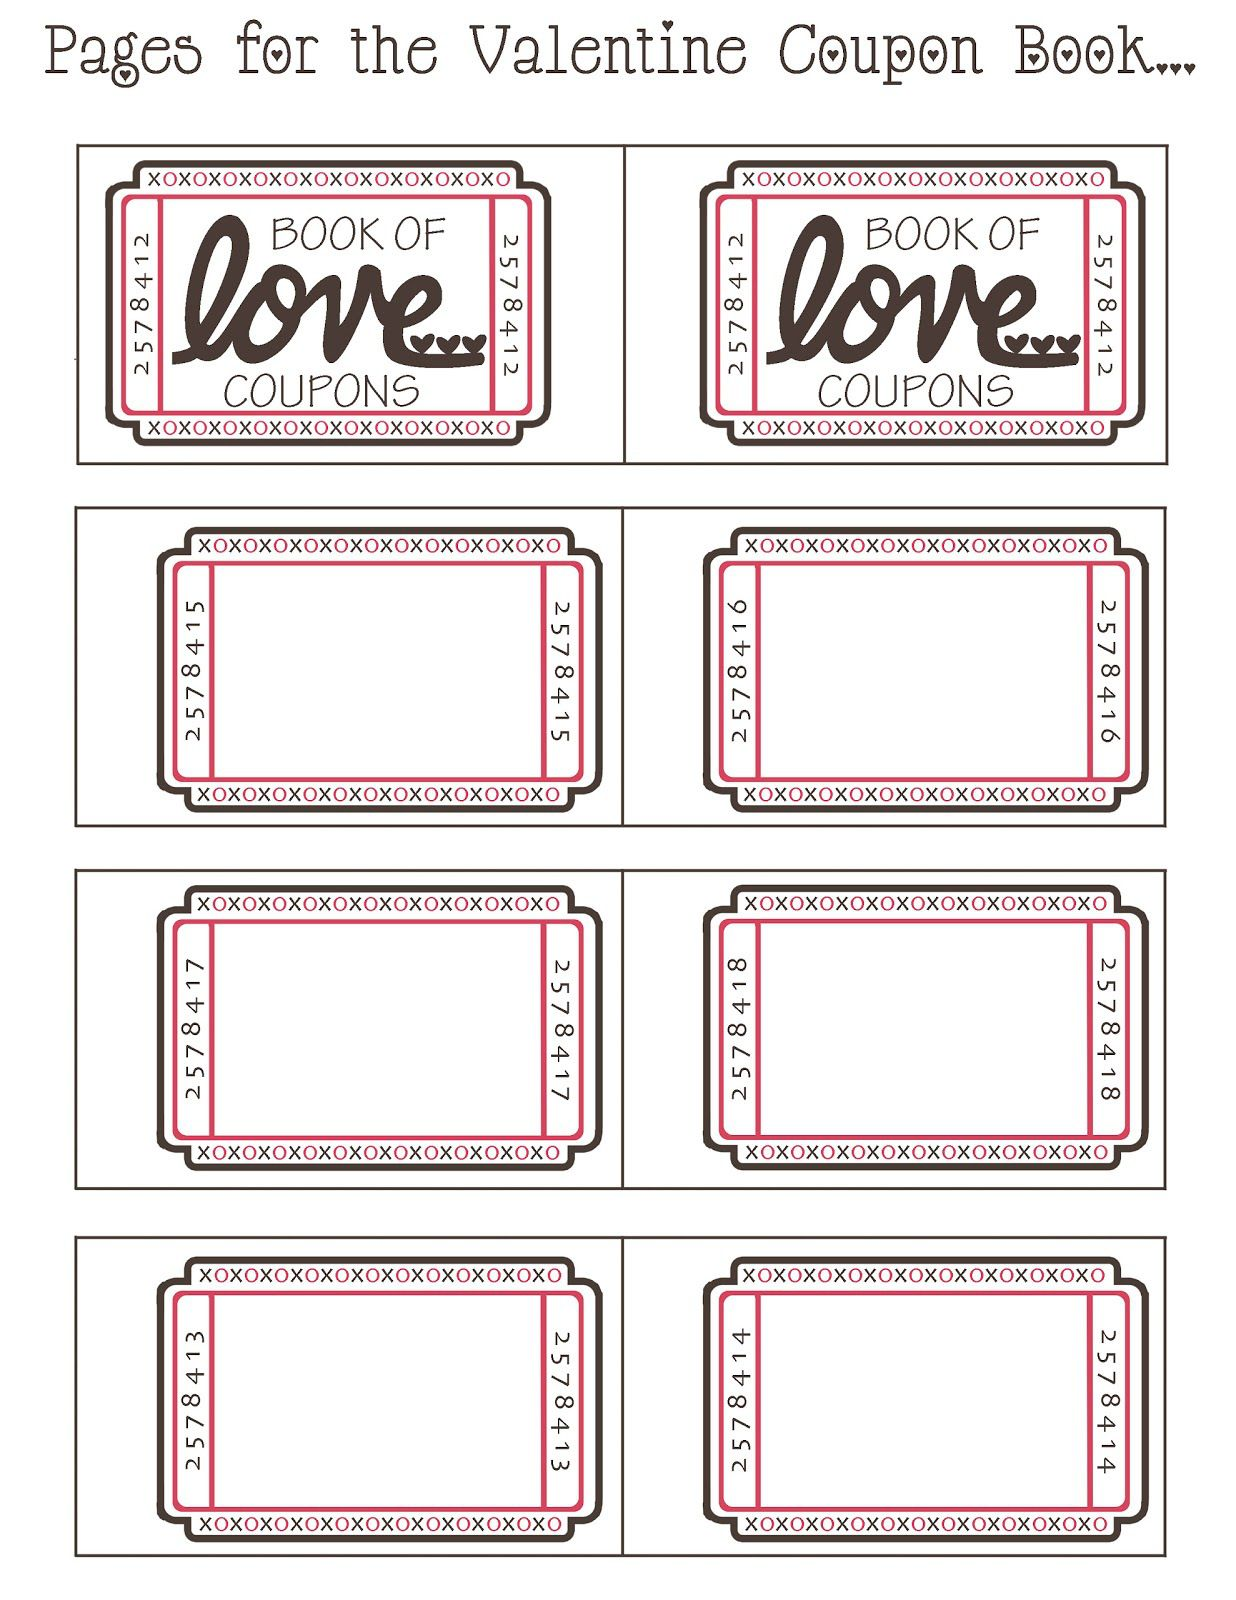 Coupon book ideas for husband blank love coupon templates for Love coupons for him template